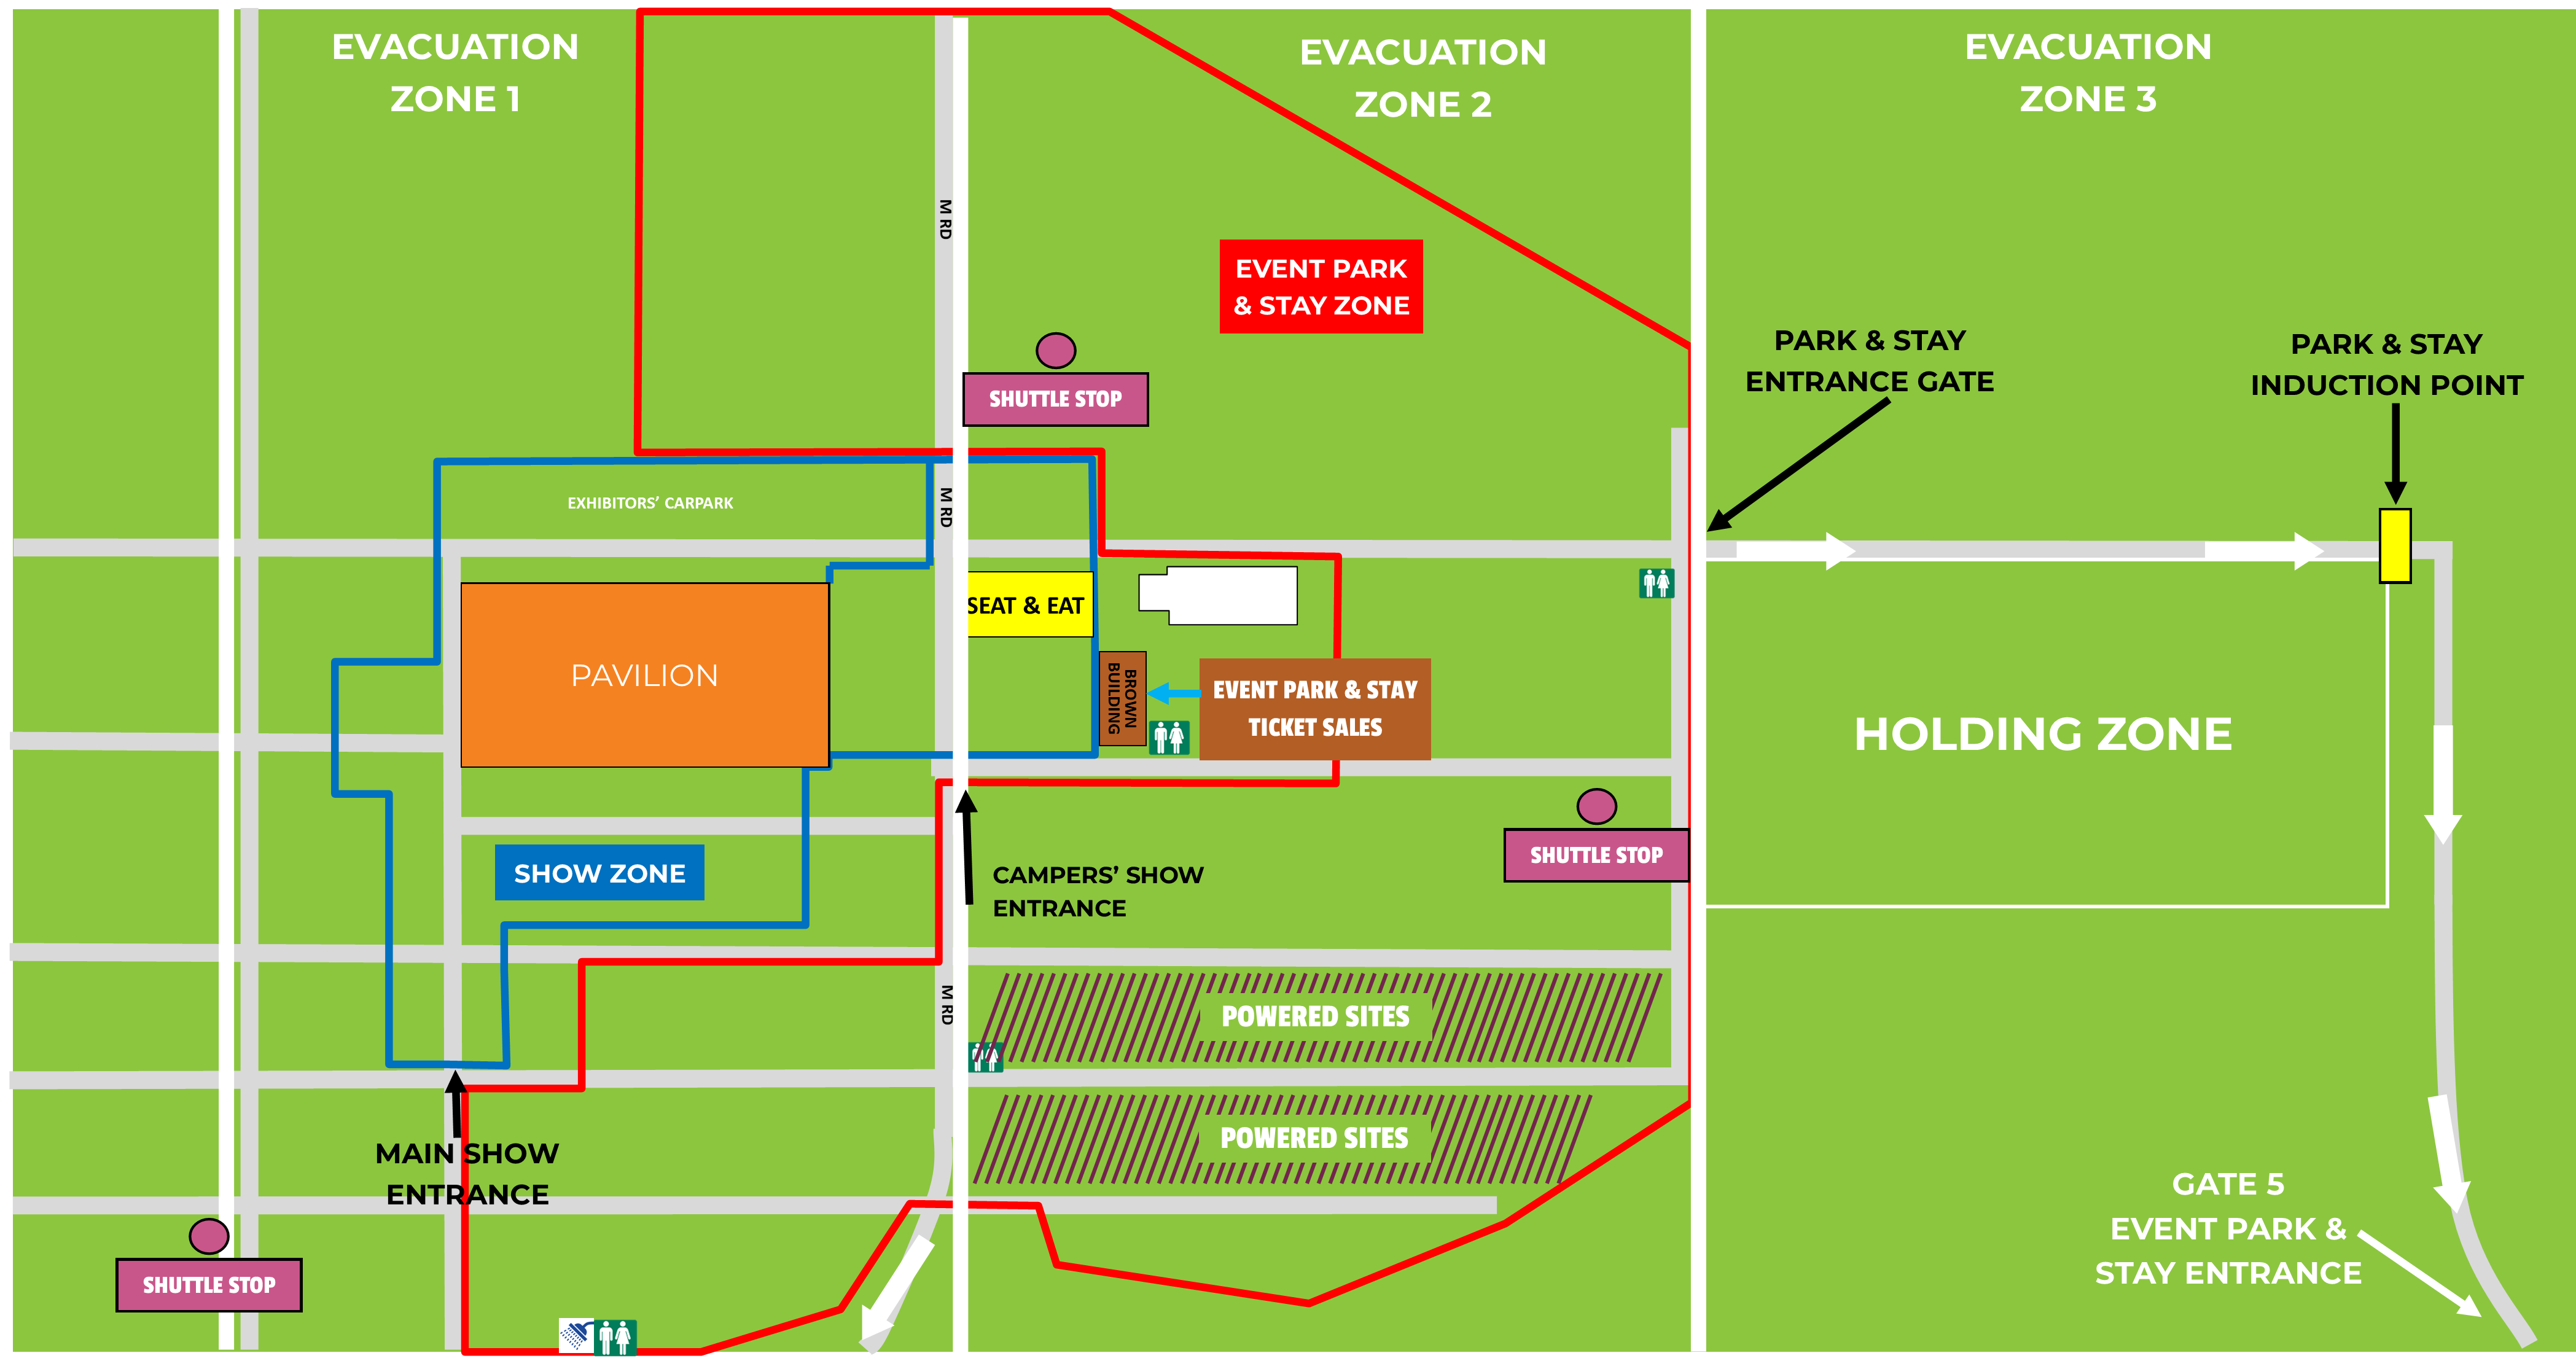 Event Park & Stay Overview with Evacuation Info